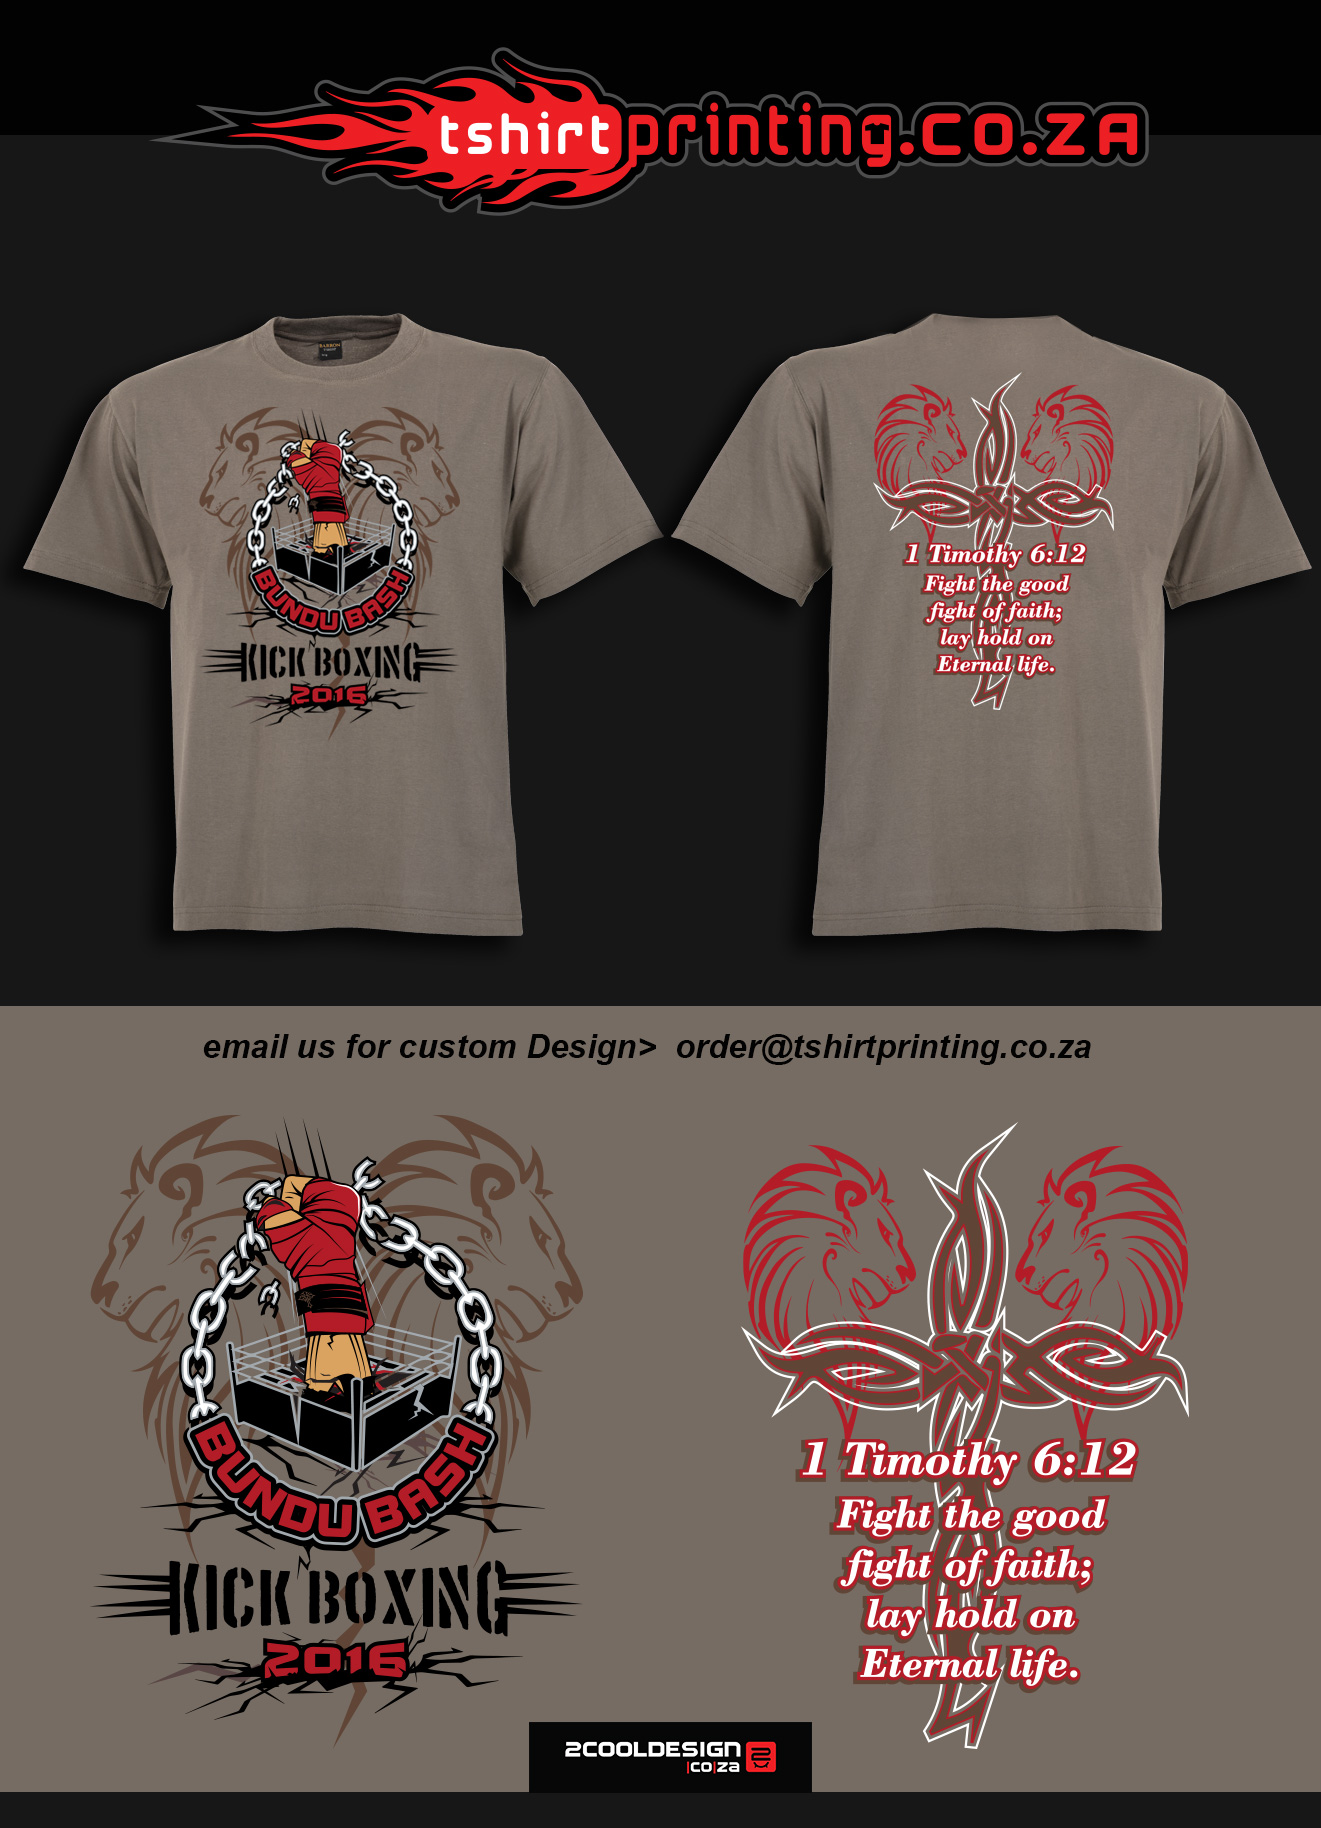 T Shirt Screen Printers Usa Cotswold Hire